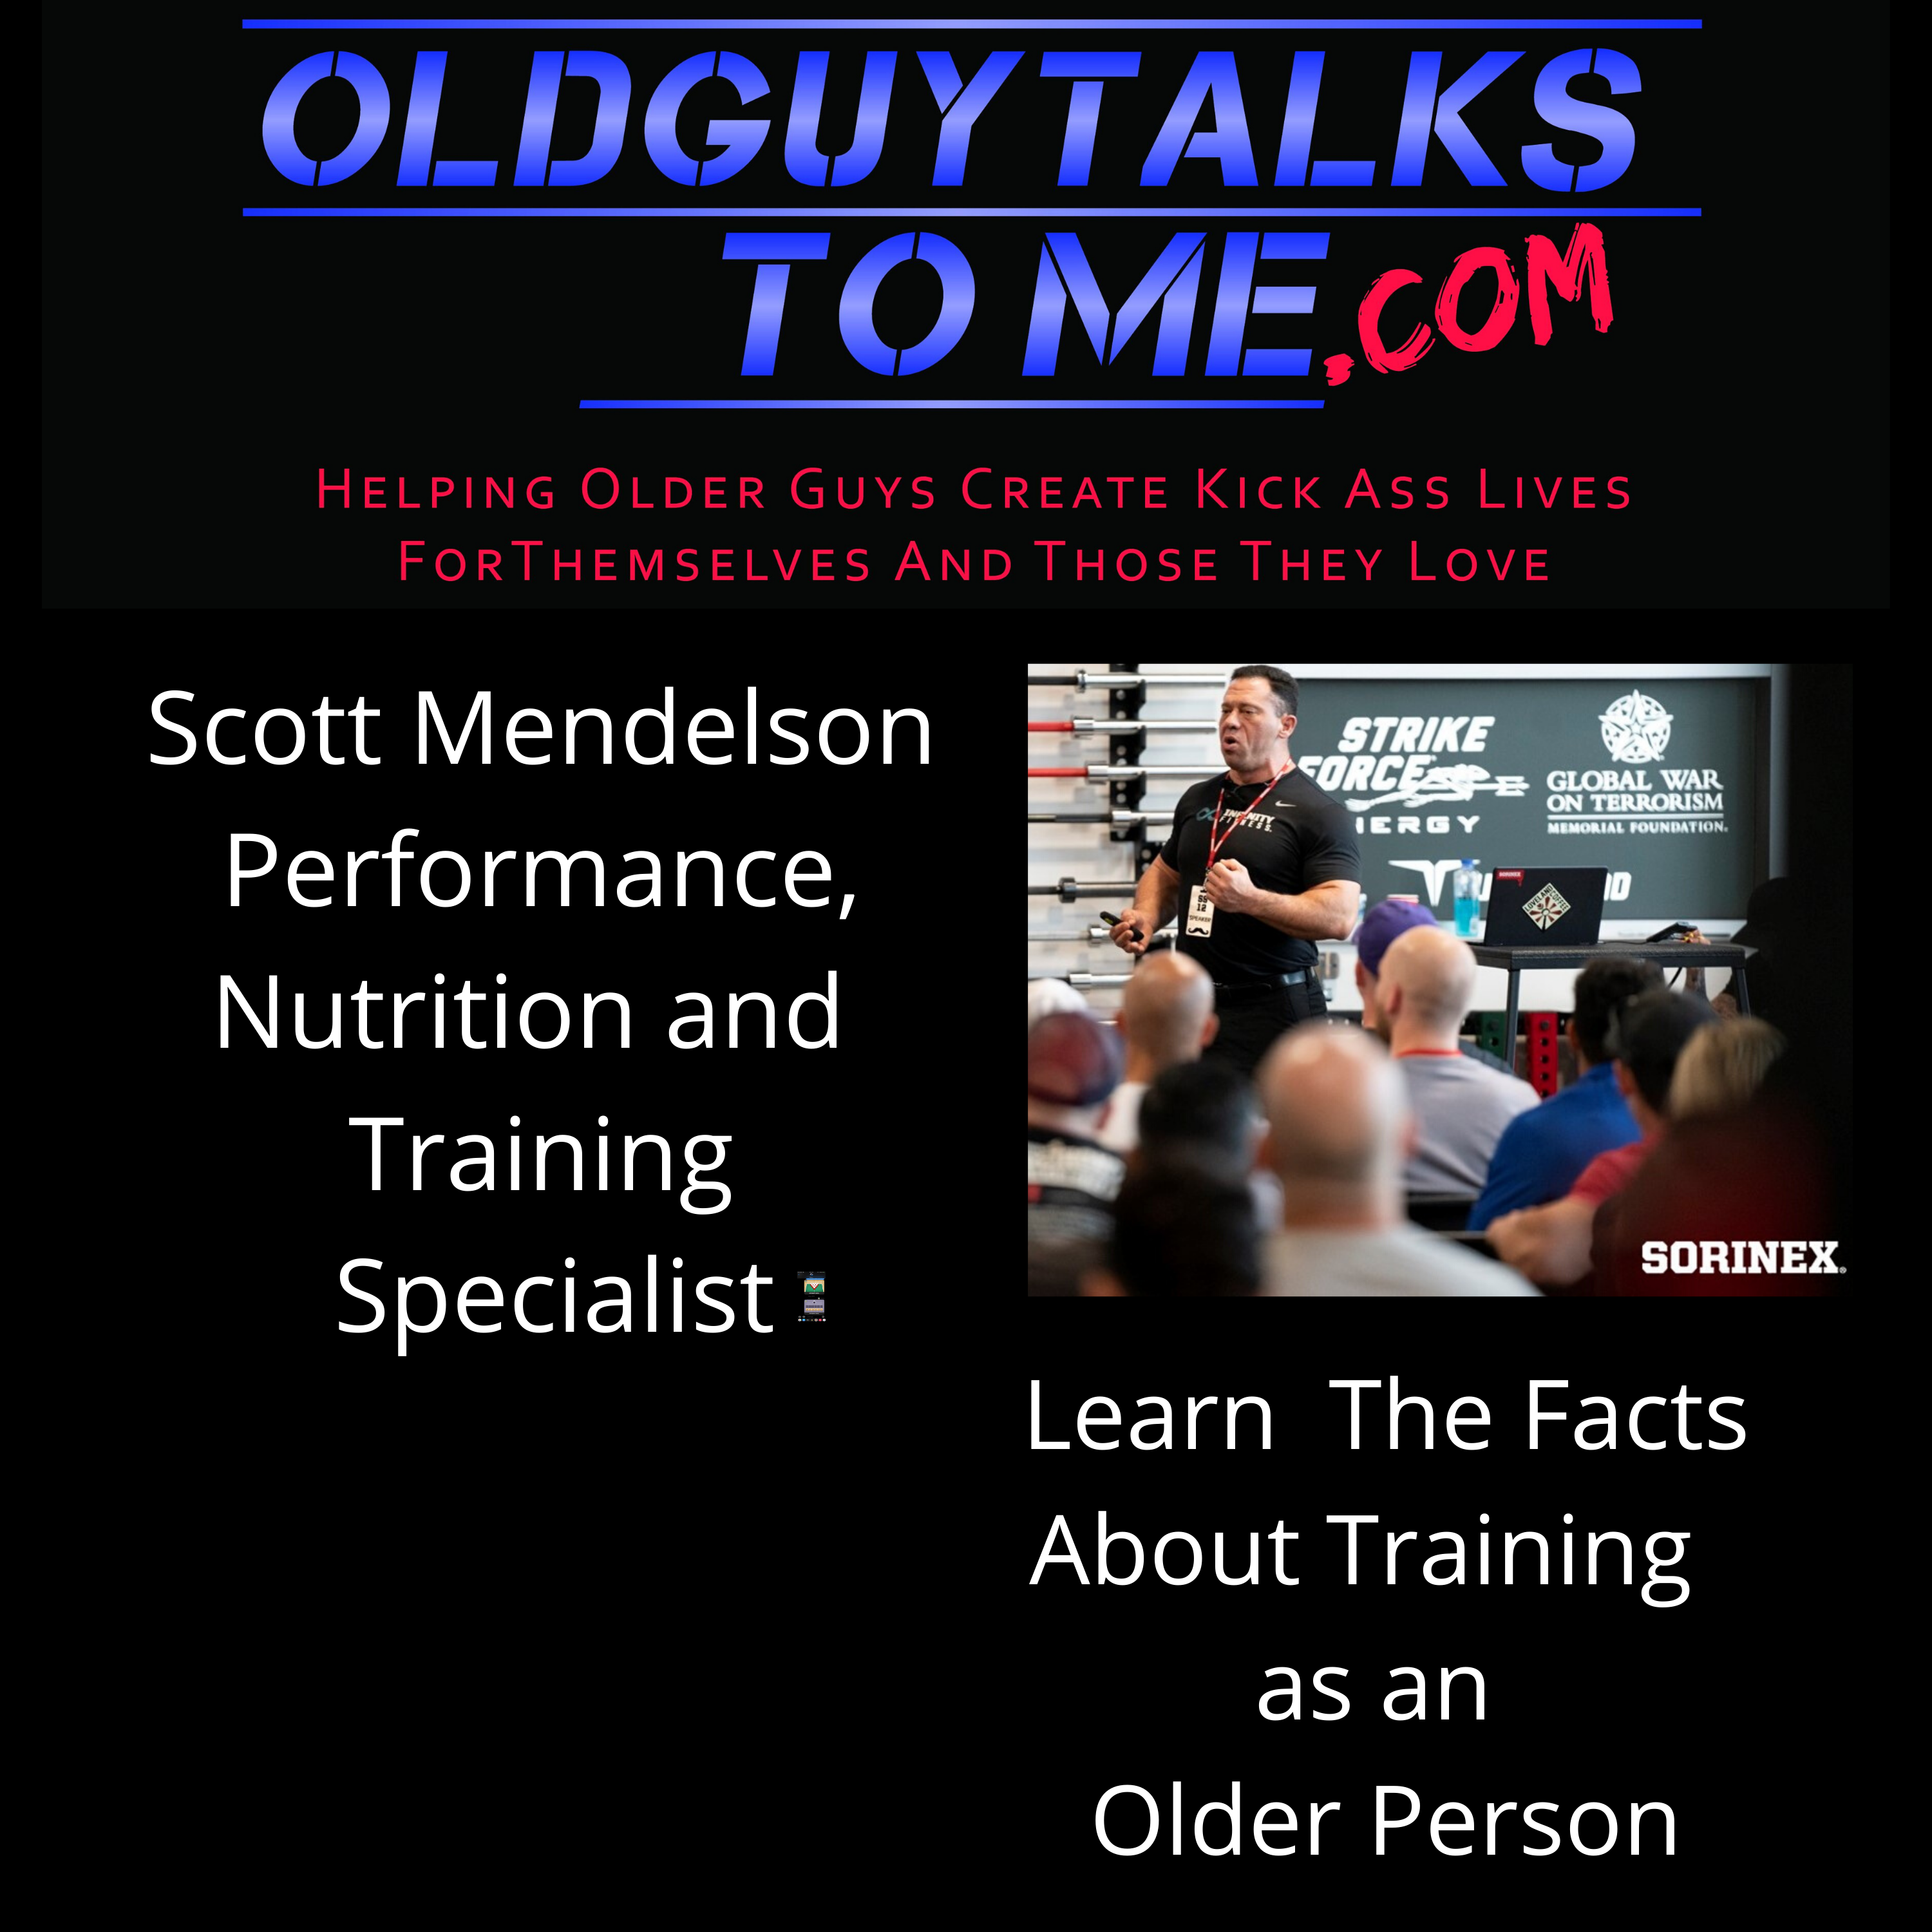 OldGuyTalksToMe - WORKING OUT AND AVOIDING INJURIES IS MORE OF A CHALLENGE AS WE GET OLDER